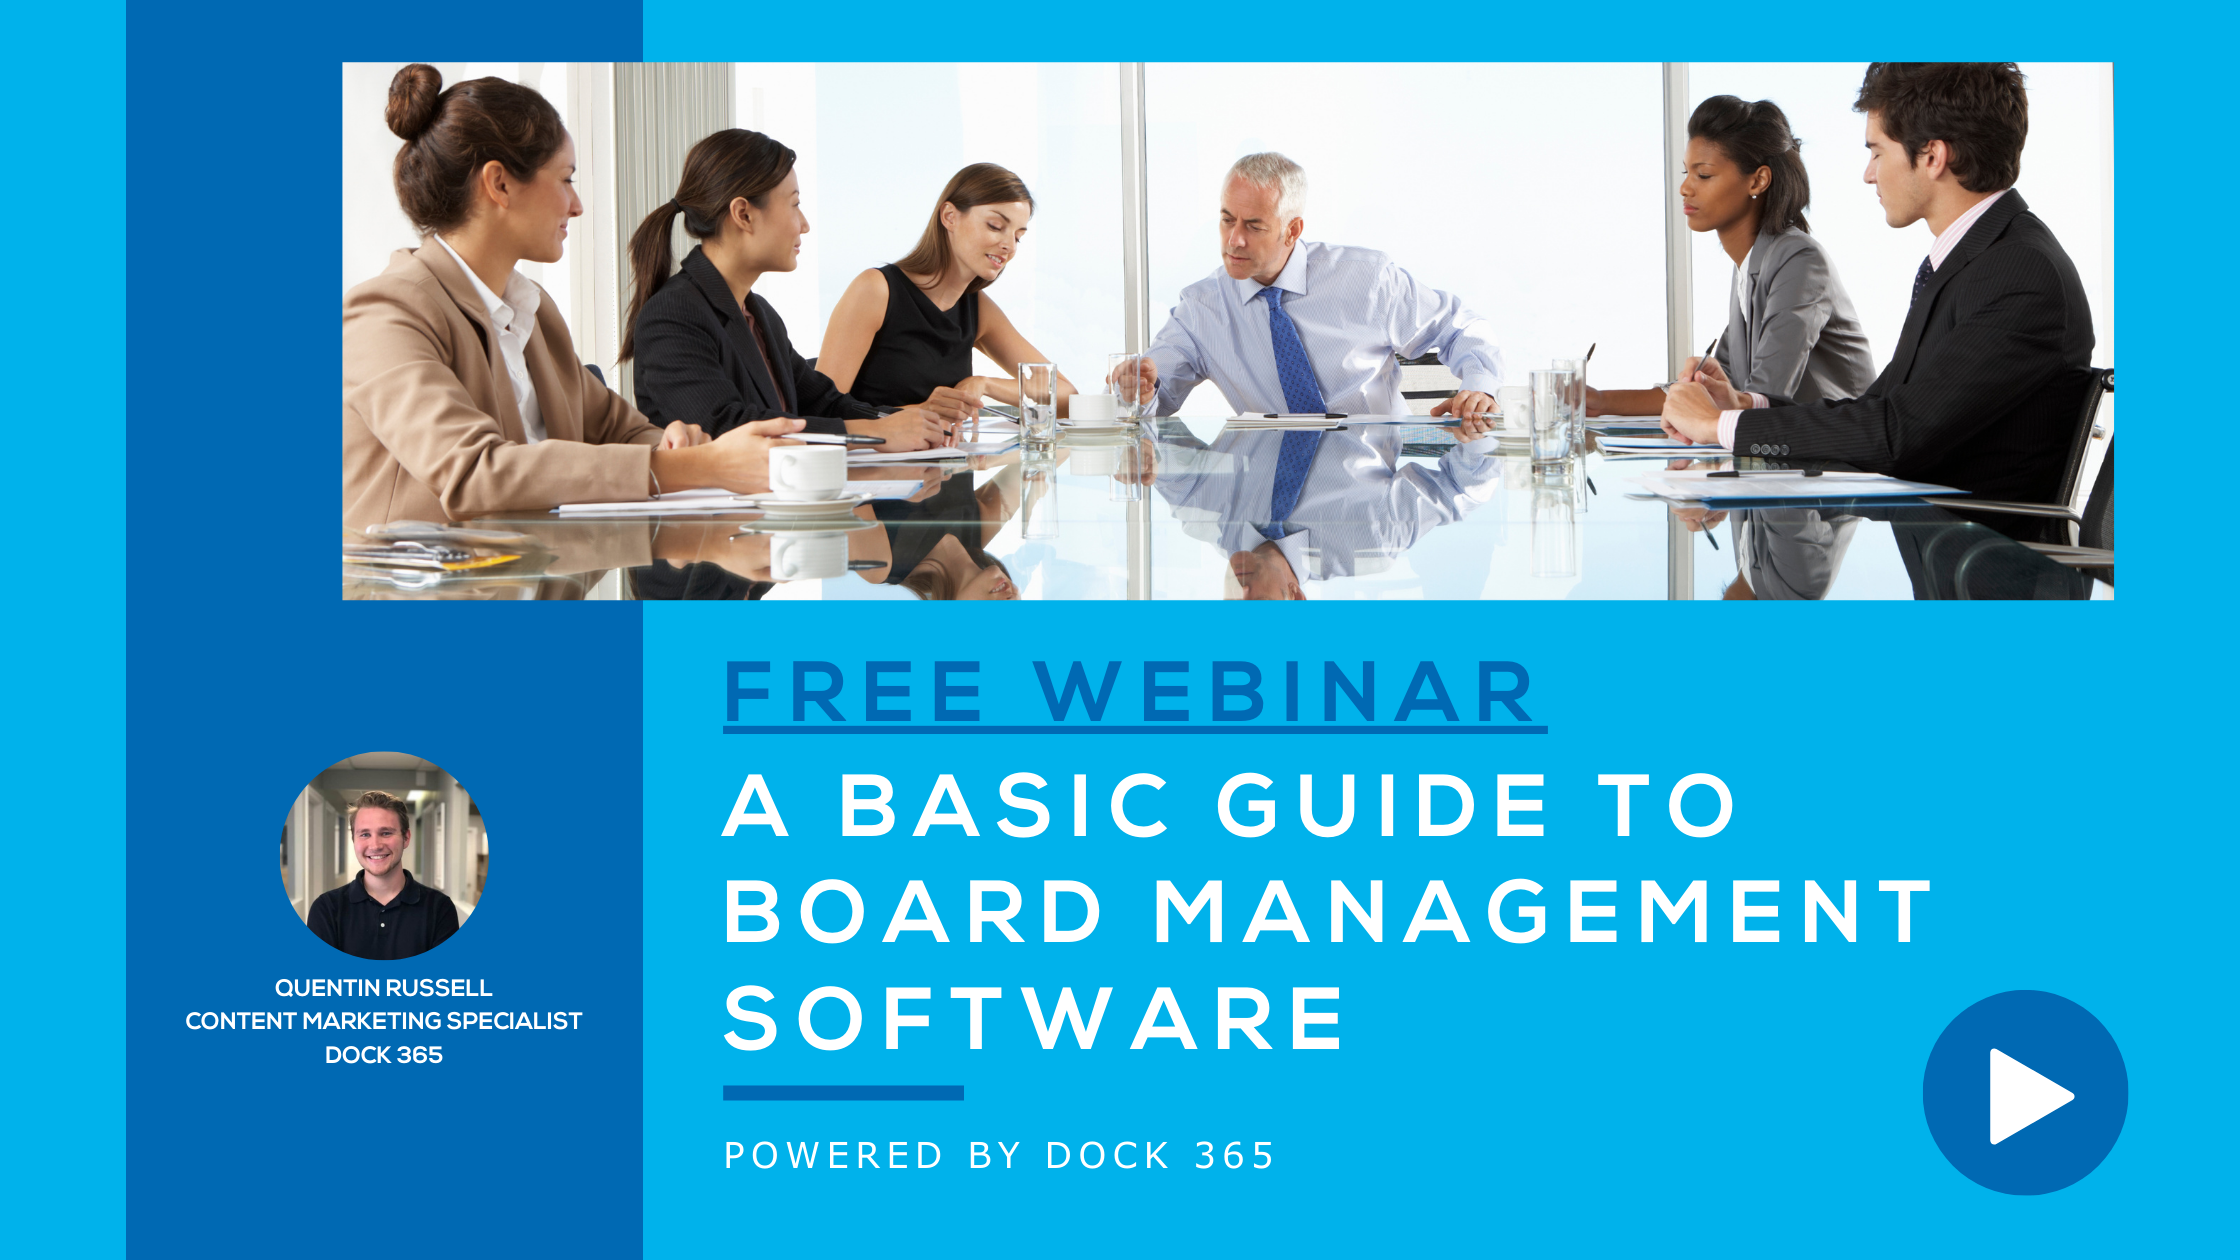 Dock 365 Webinar - A Basic Guide to Board Management Software